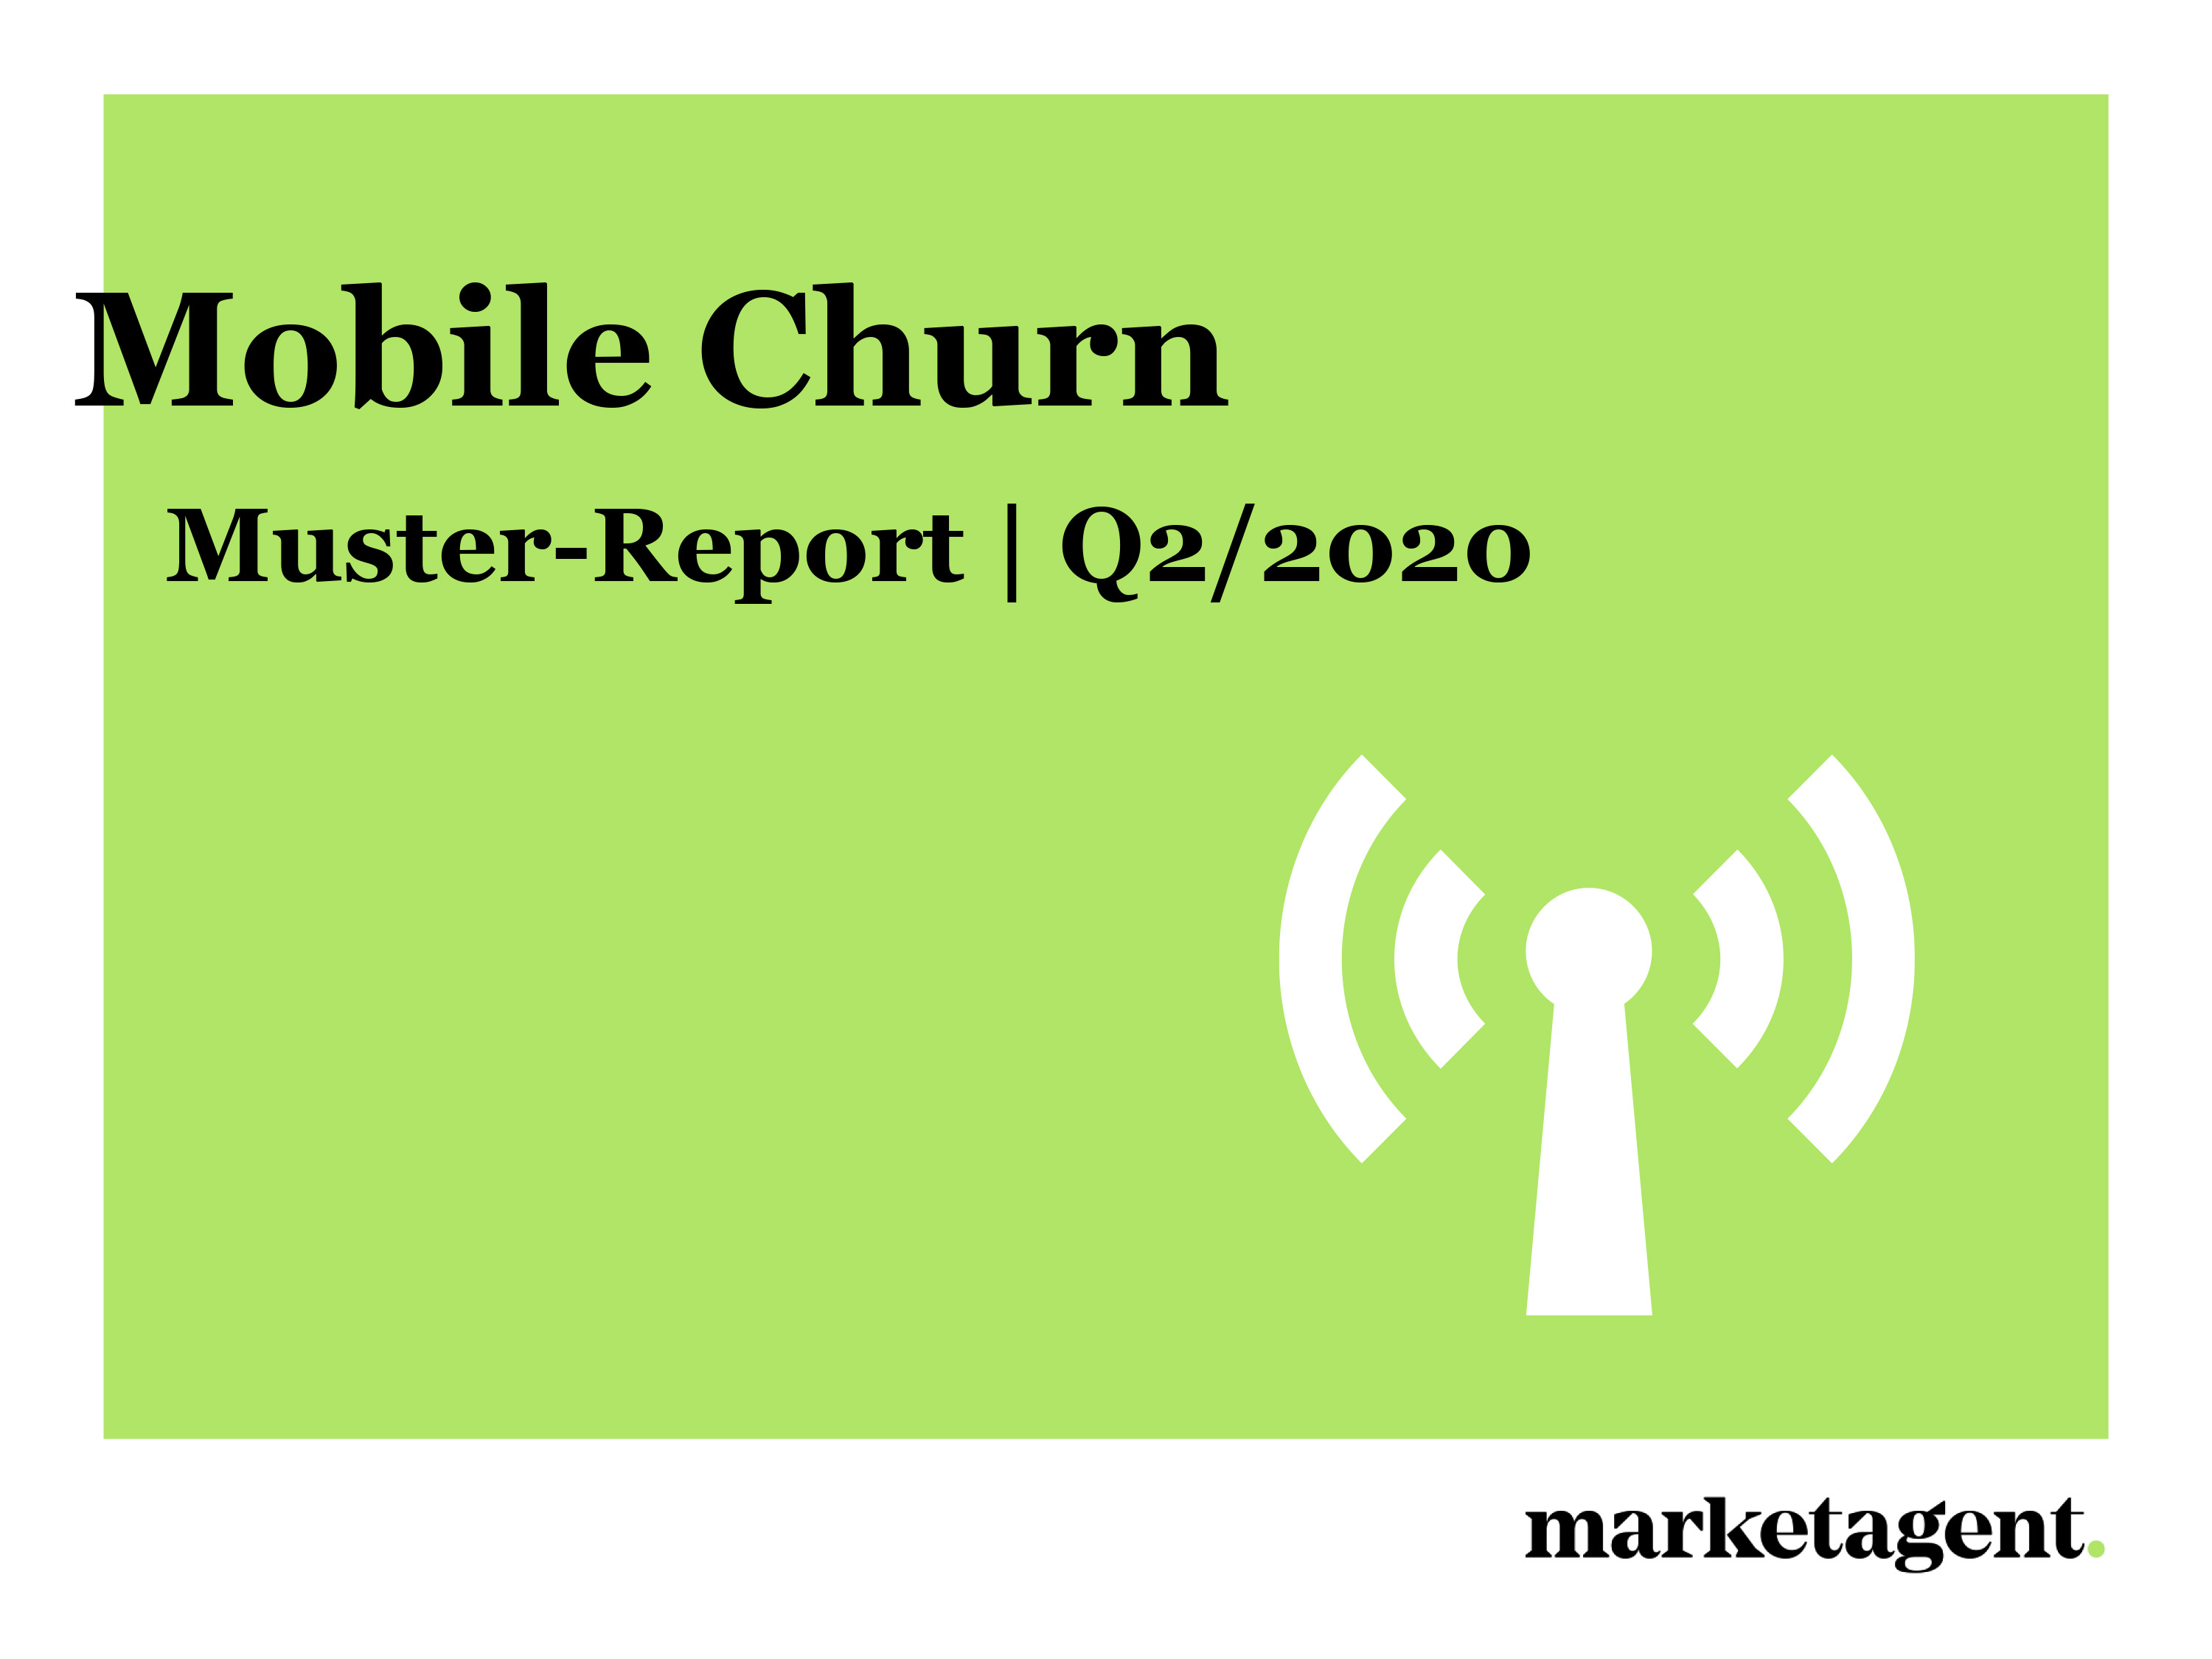 Muster-Report Mobile Churn